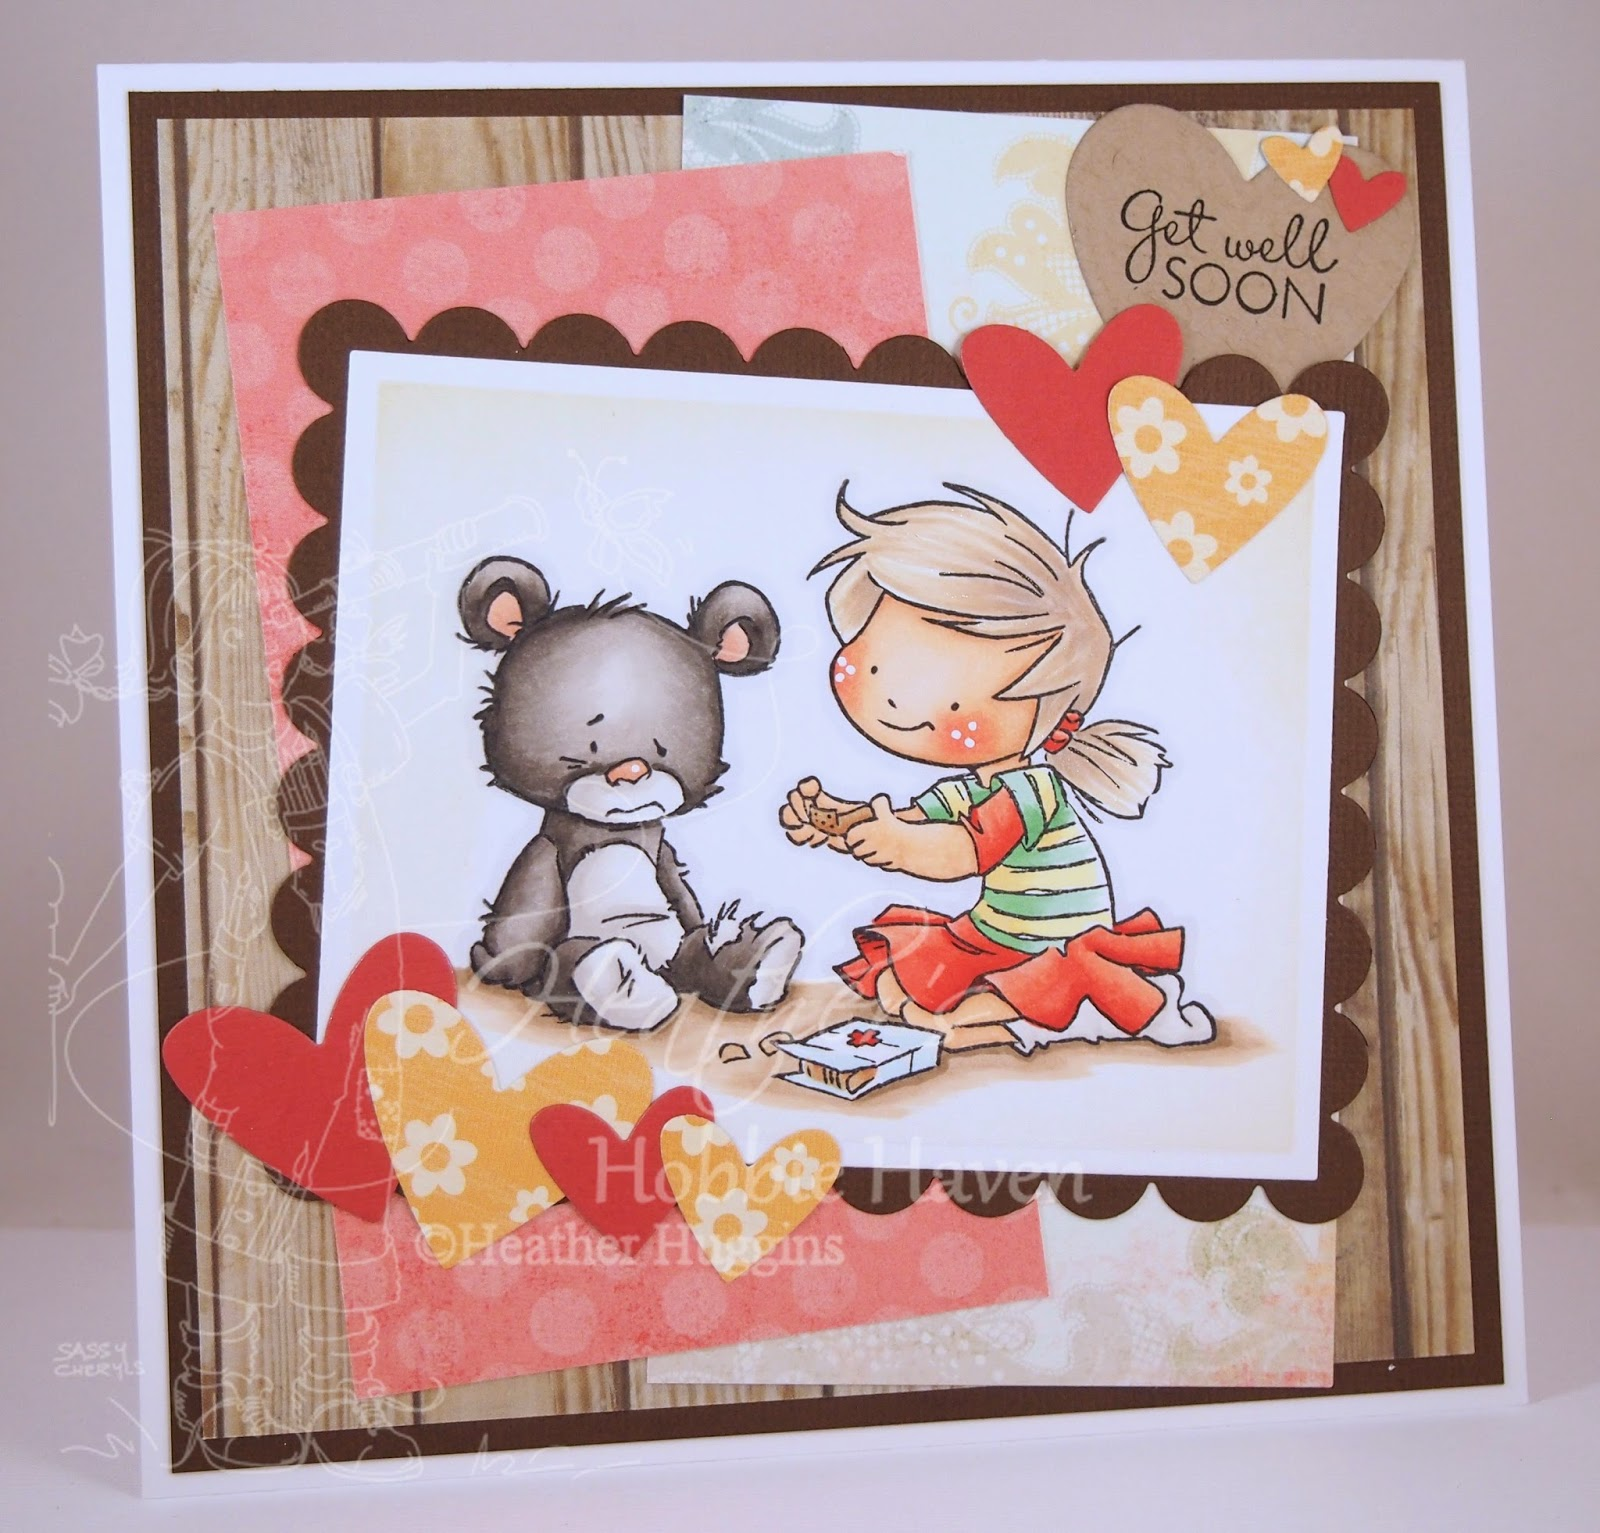 Heather's Hobbie Haven - I Will Take Care of You Card Kit